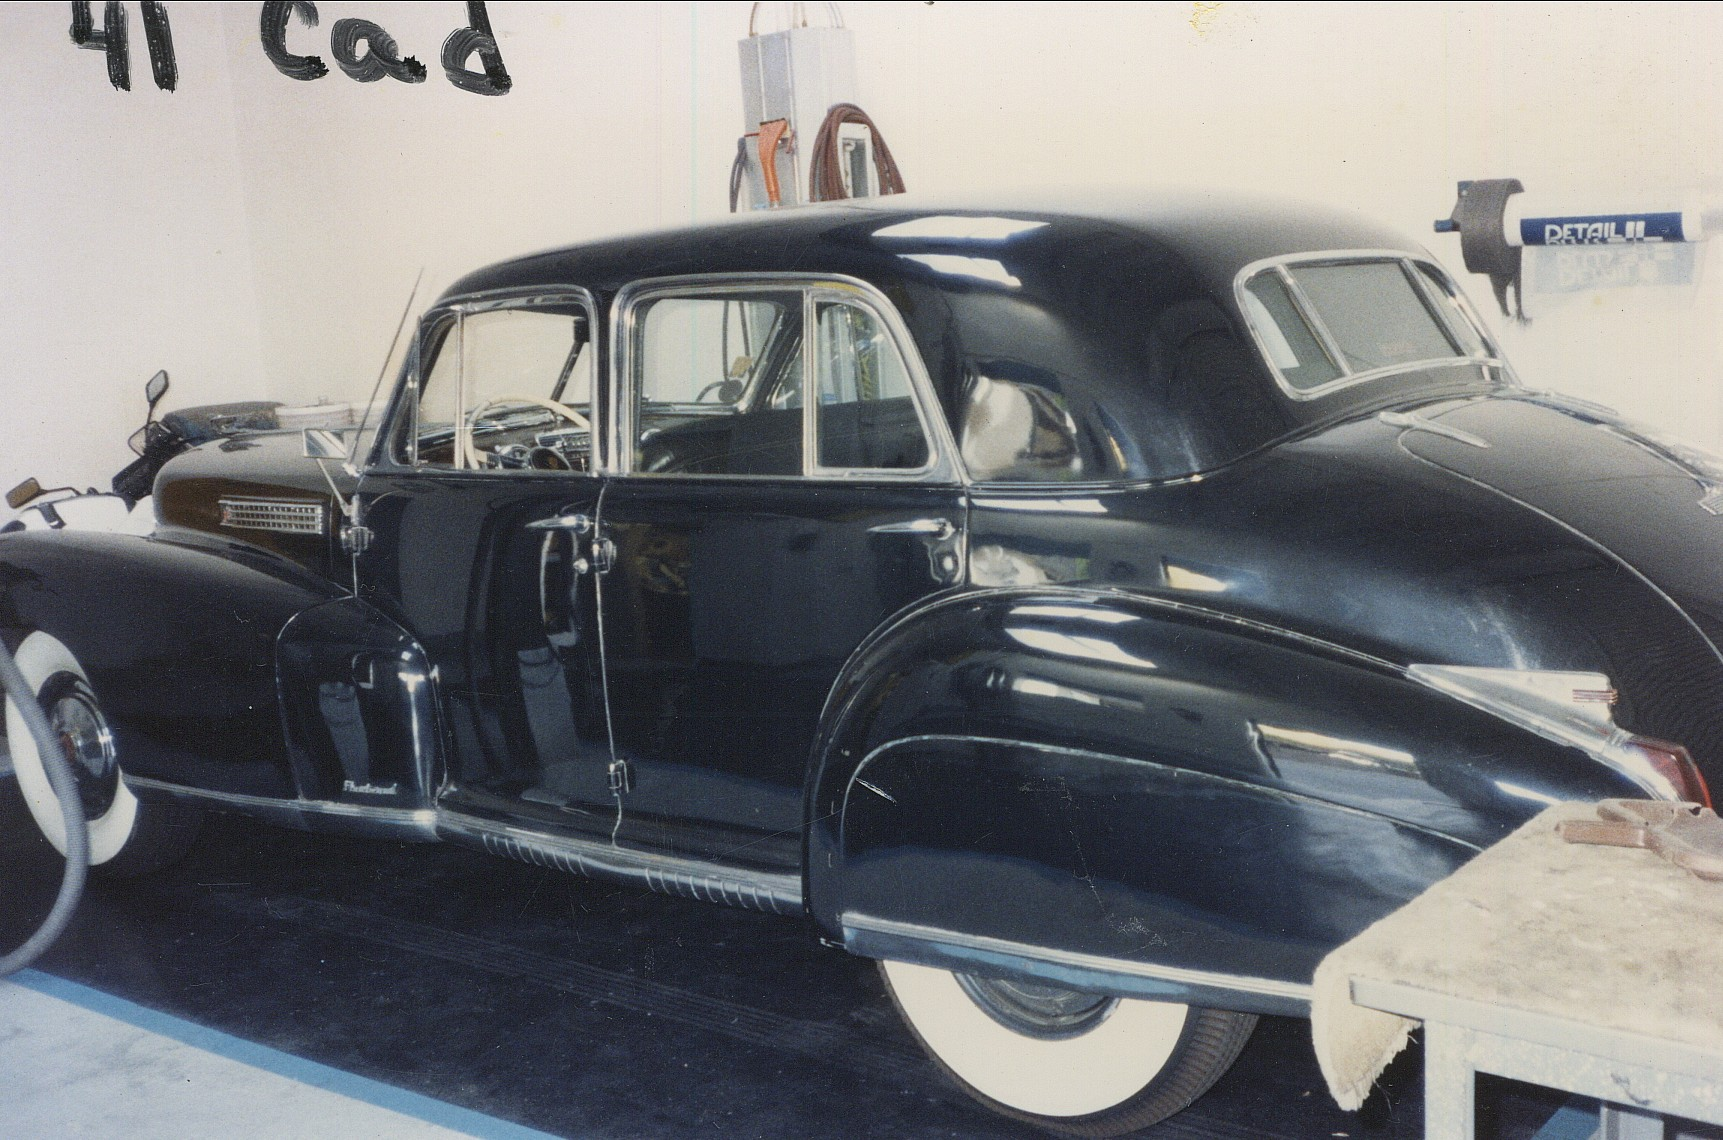 Old photo of classic vintage Cadillac at Rainbow Carwash Detail Plus in Sunnyvale, California